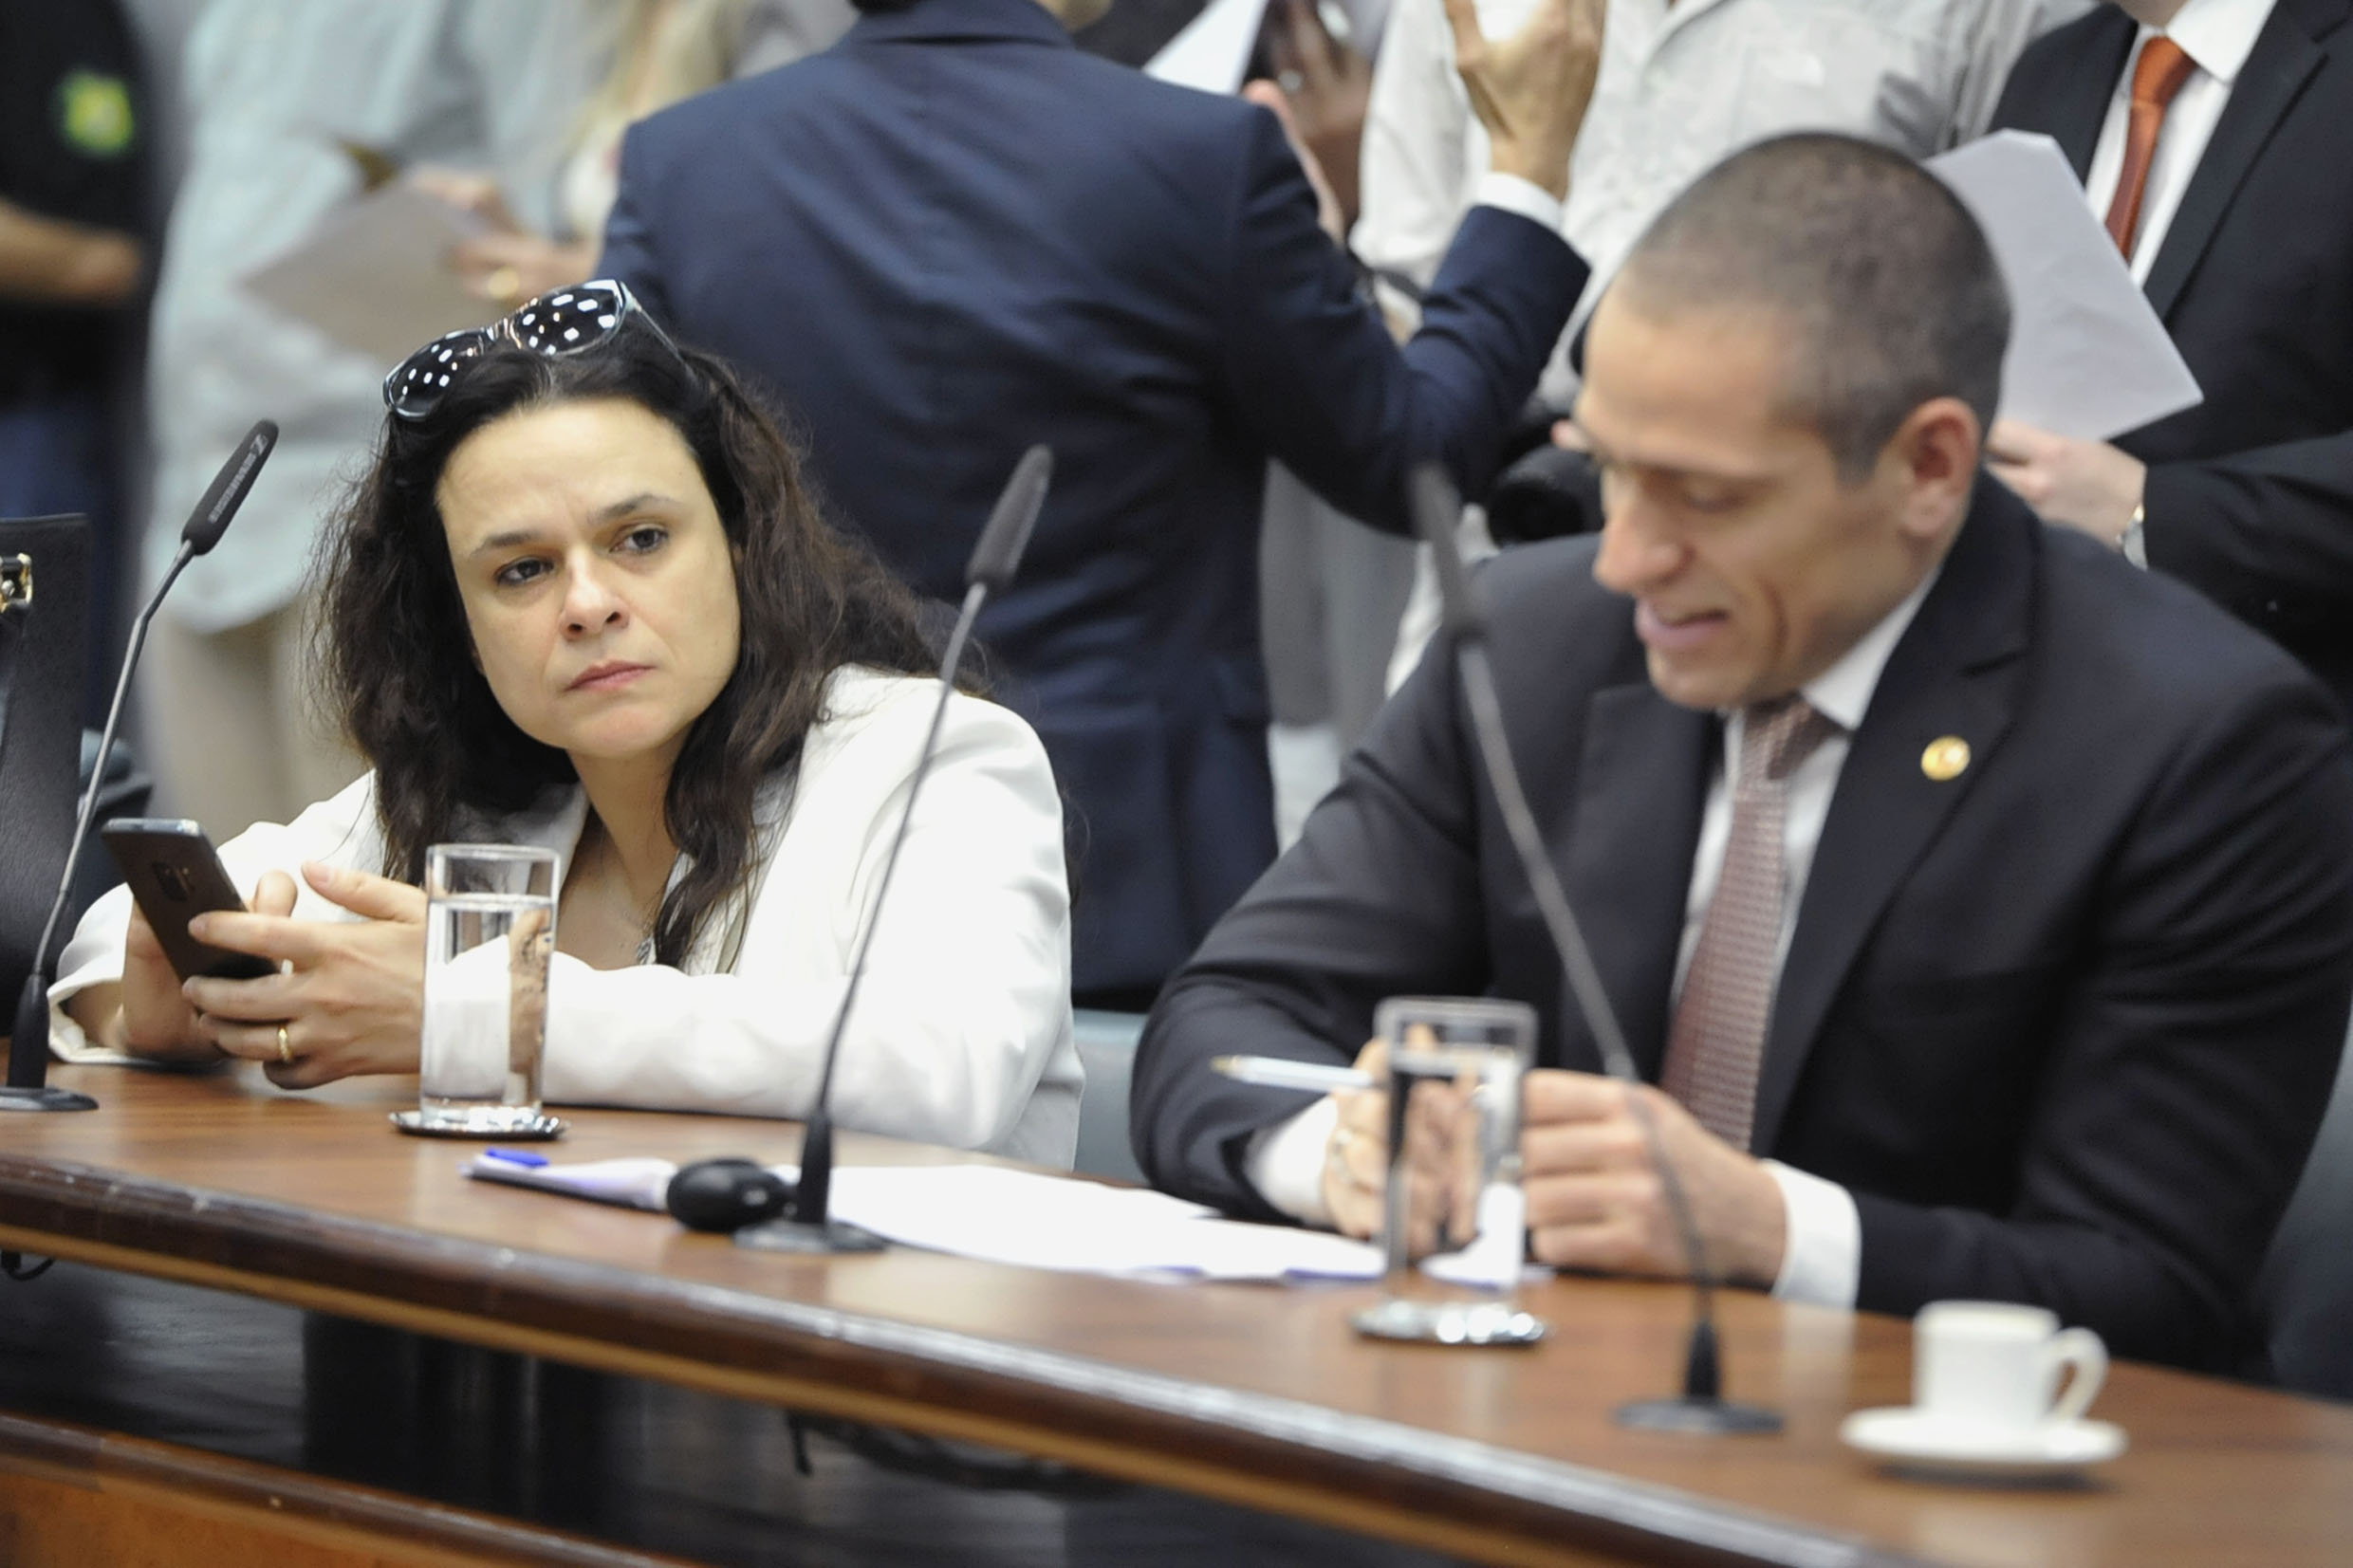 Janaina Paschoal e Heni Ozi Cukier<a style='float:right' href='https://www3.al.sp.gov.br/repositorio/noticia/N-10-2019/fg242527.jpg' target=_blank><img src='/_img/material-file-download-white.png' width='14px' alt='Clique para baixar a imagem'></a>